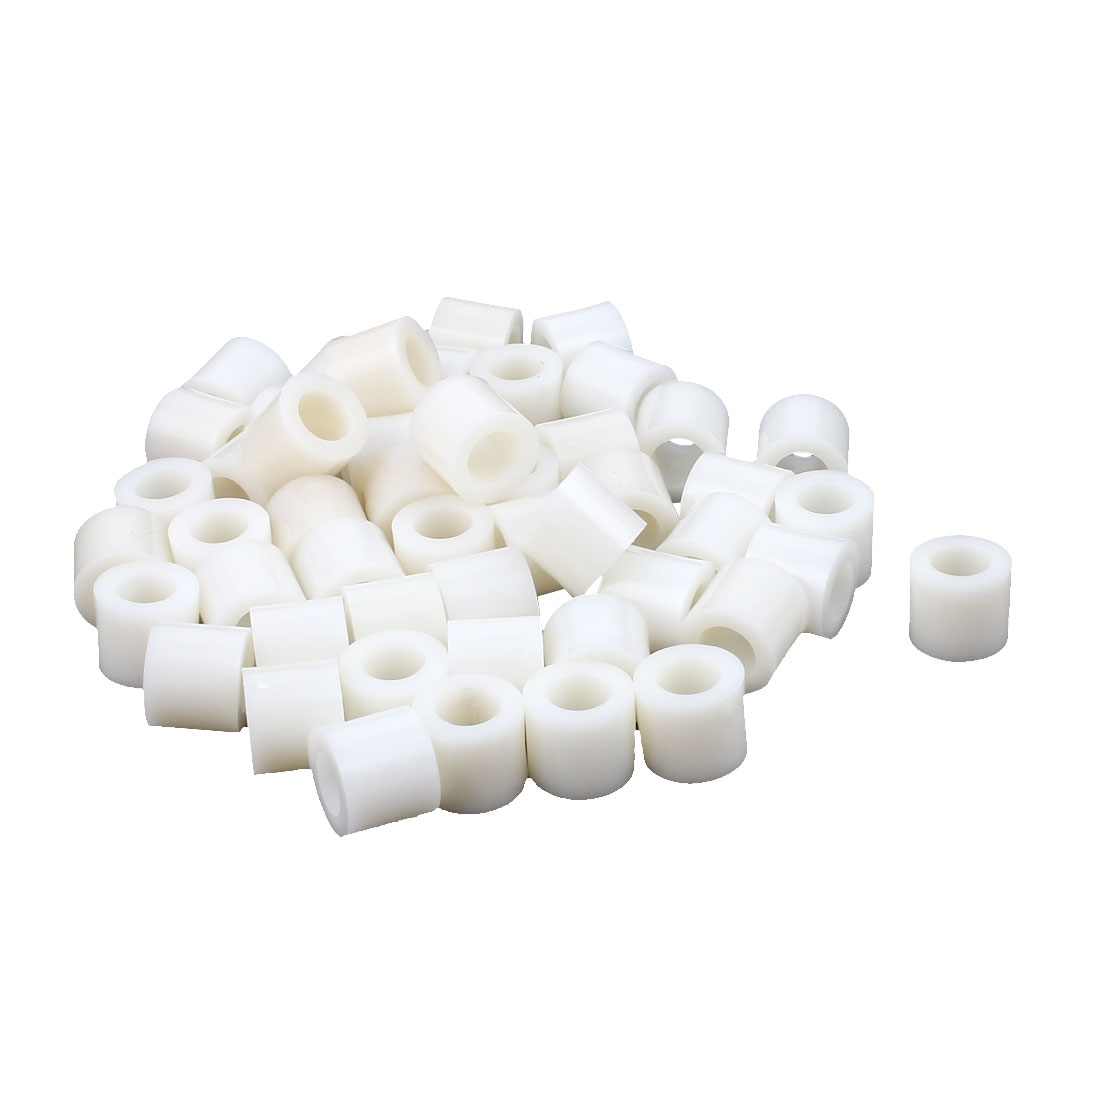 50 Pcs ABS Cylinder LED Spacer Holder Support M8 x 12mm Off-White